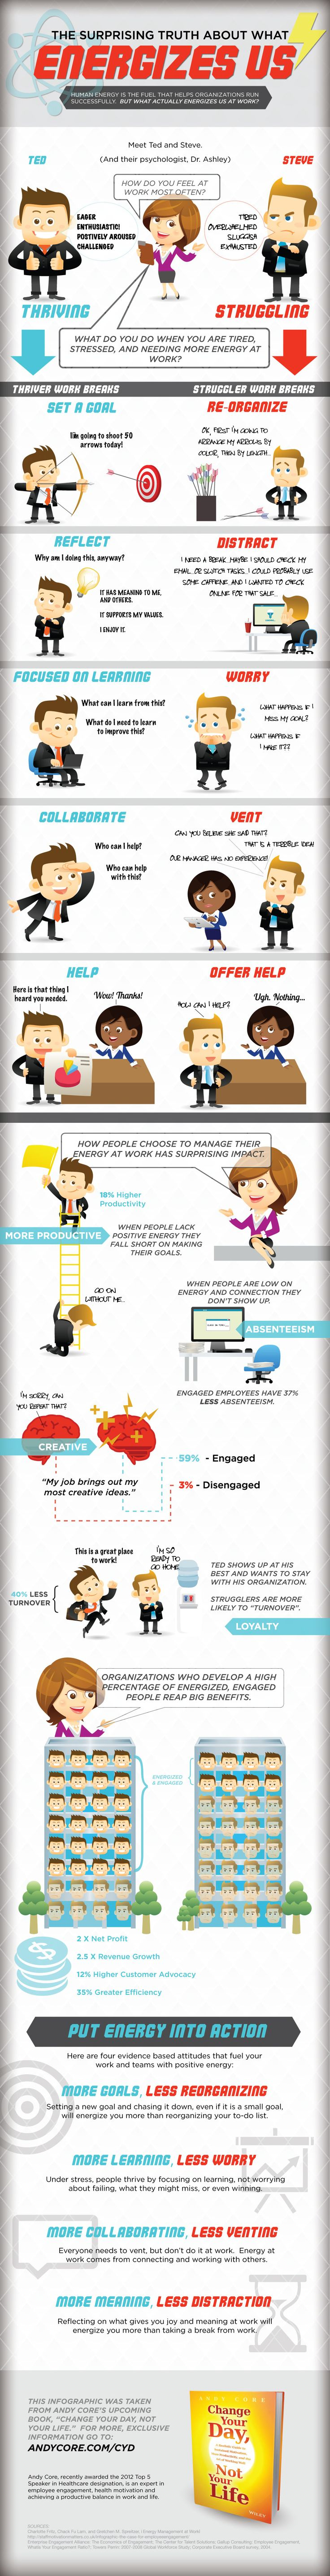 How to Feel More Energetic at Work and Increase Productivity Infographic